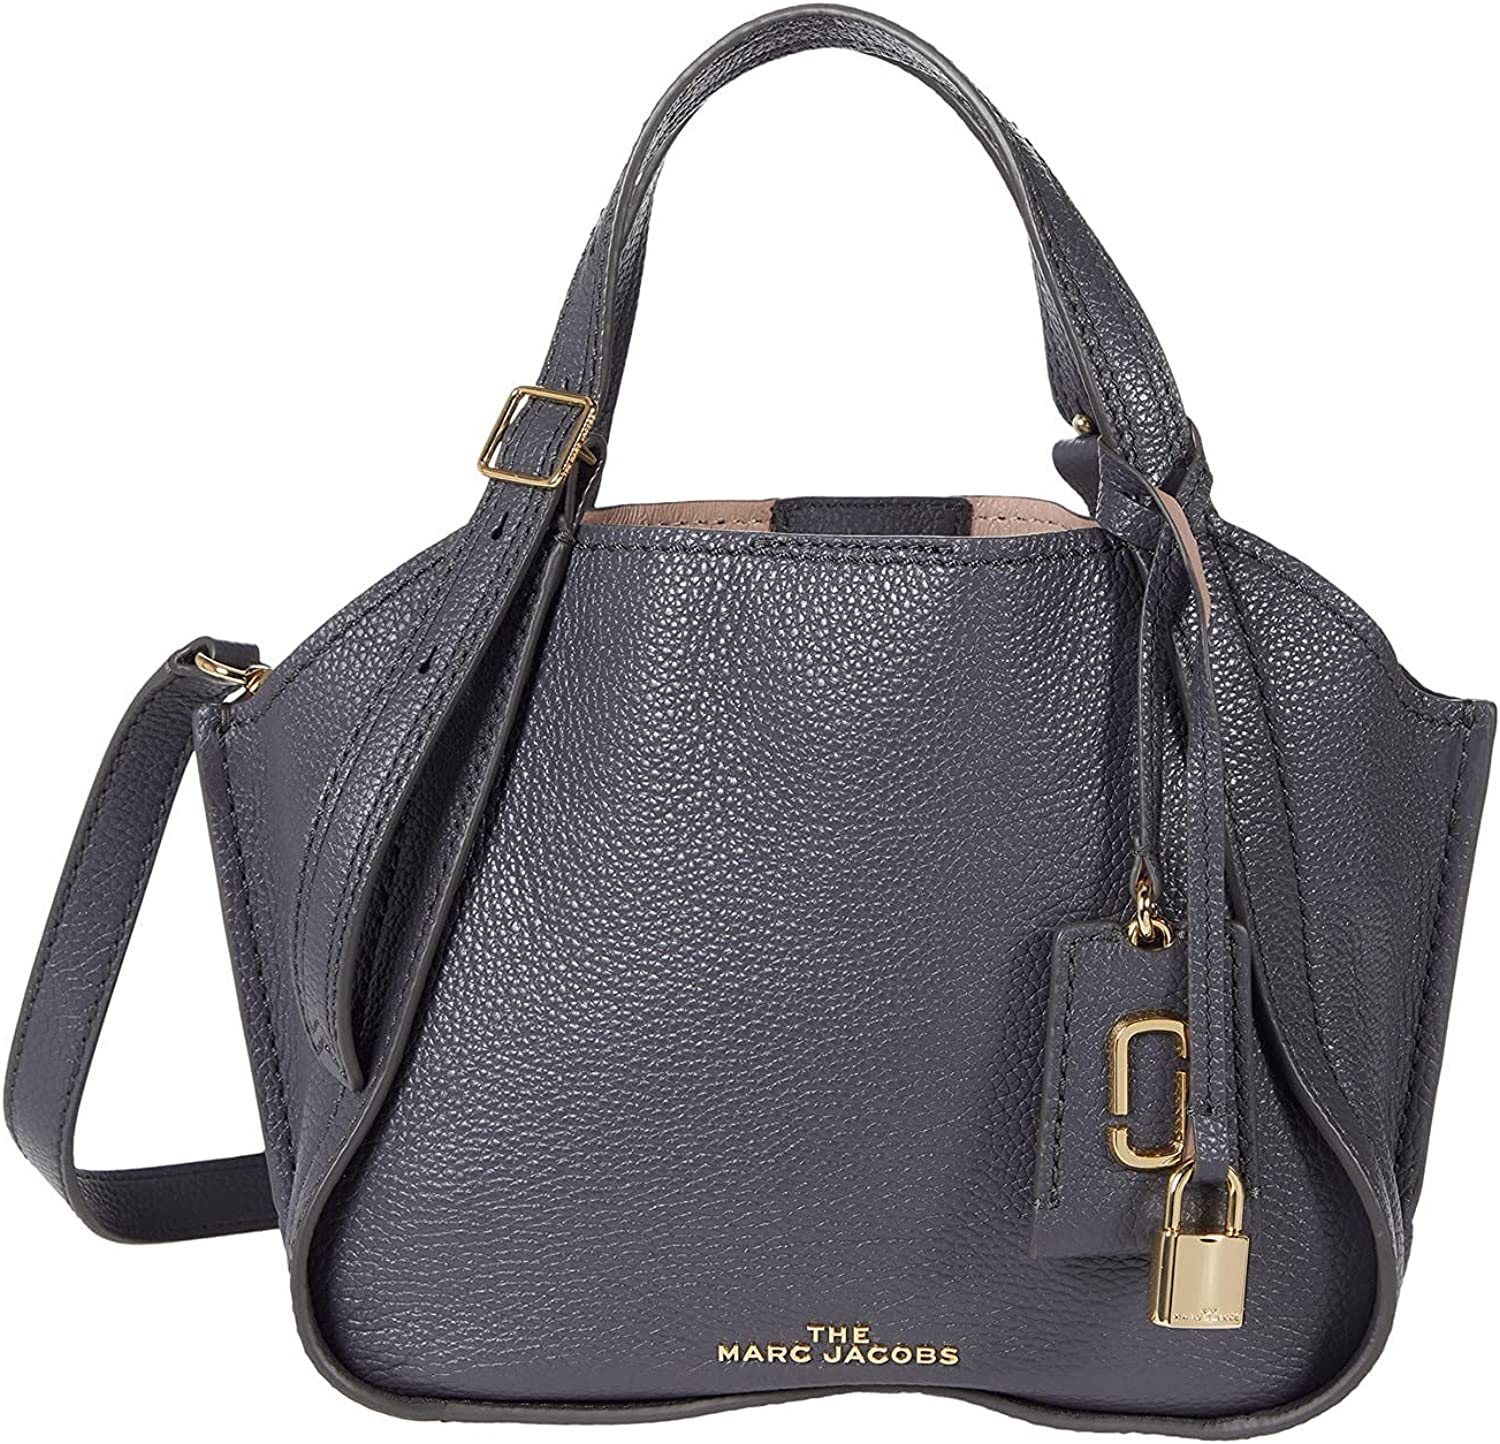 Marc Jacobs The Mini Director Tote